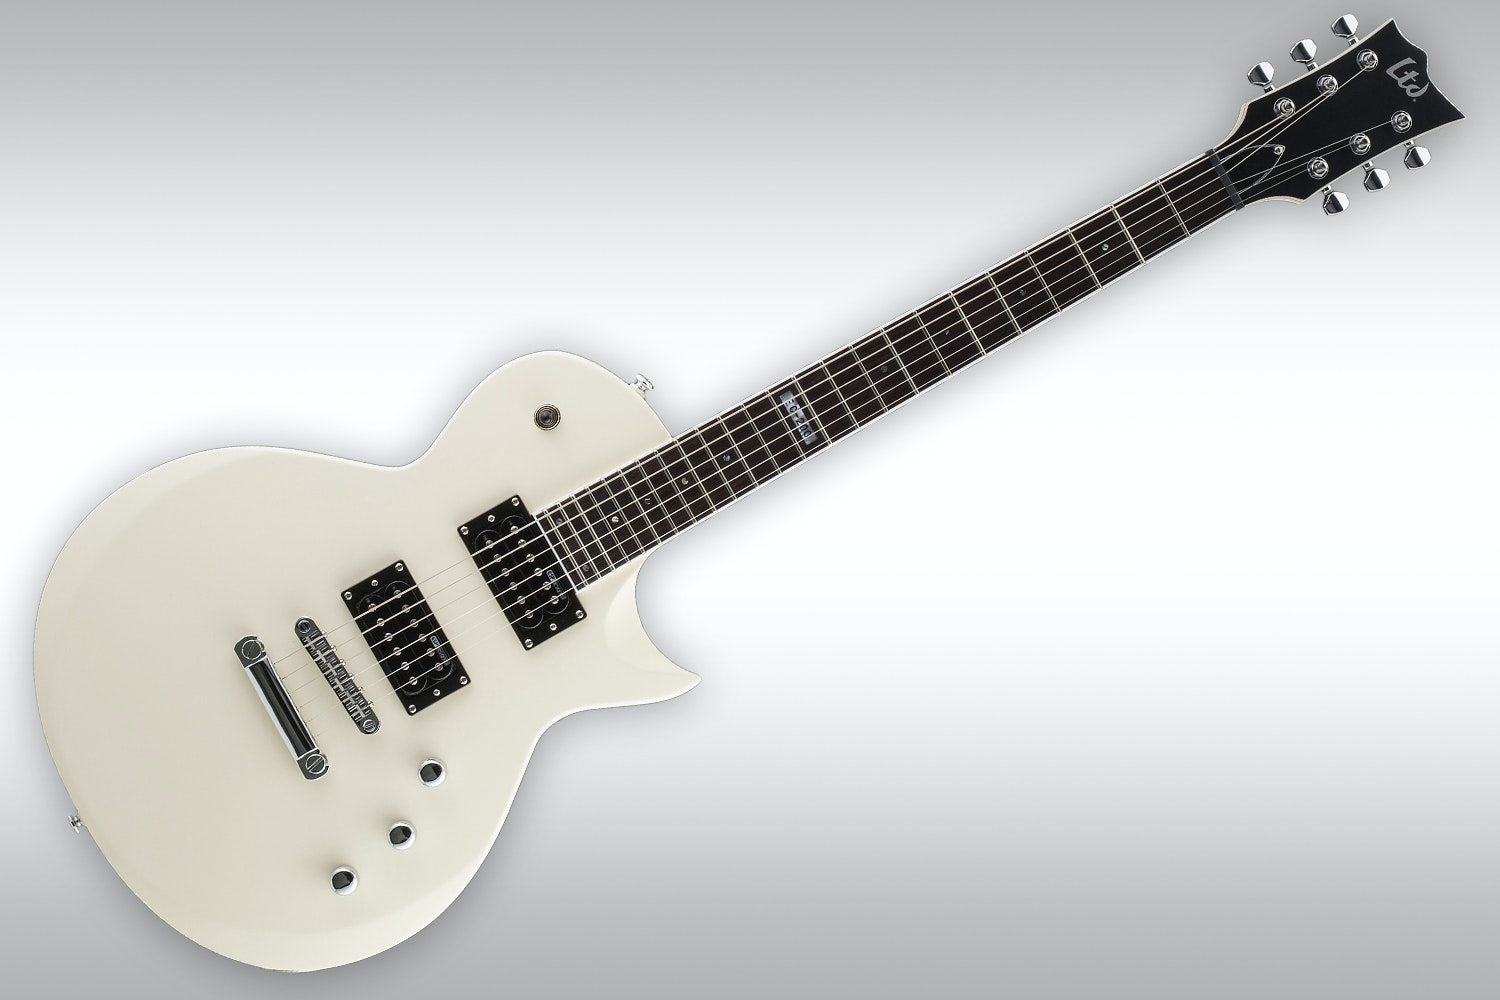 EC - 200 Vintage White Satin